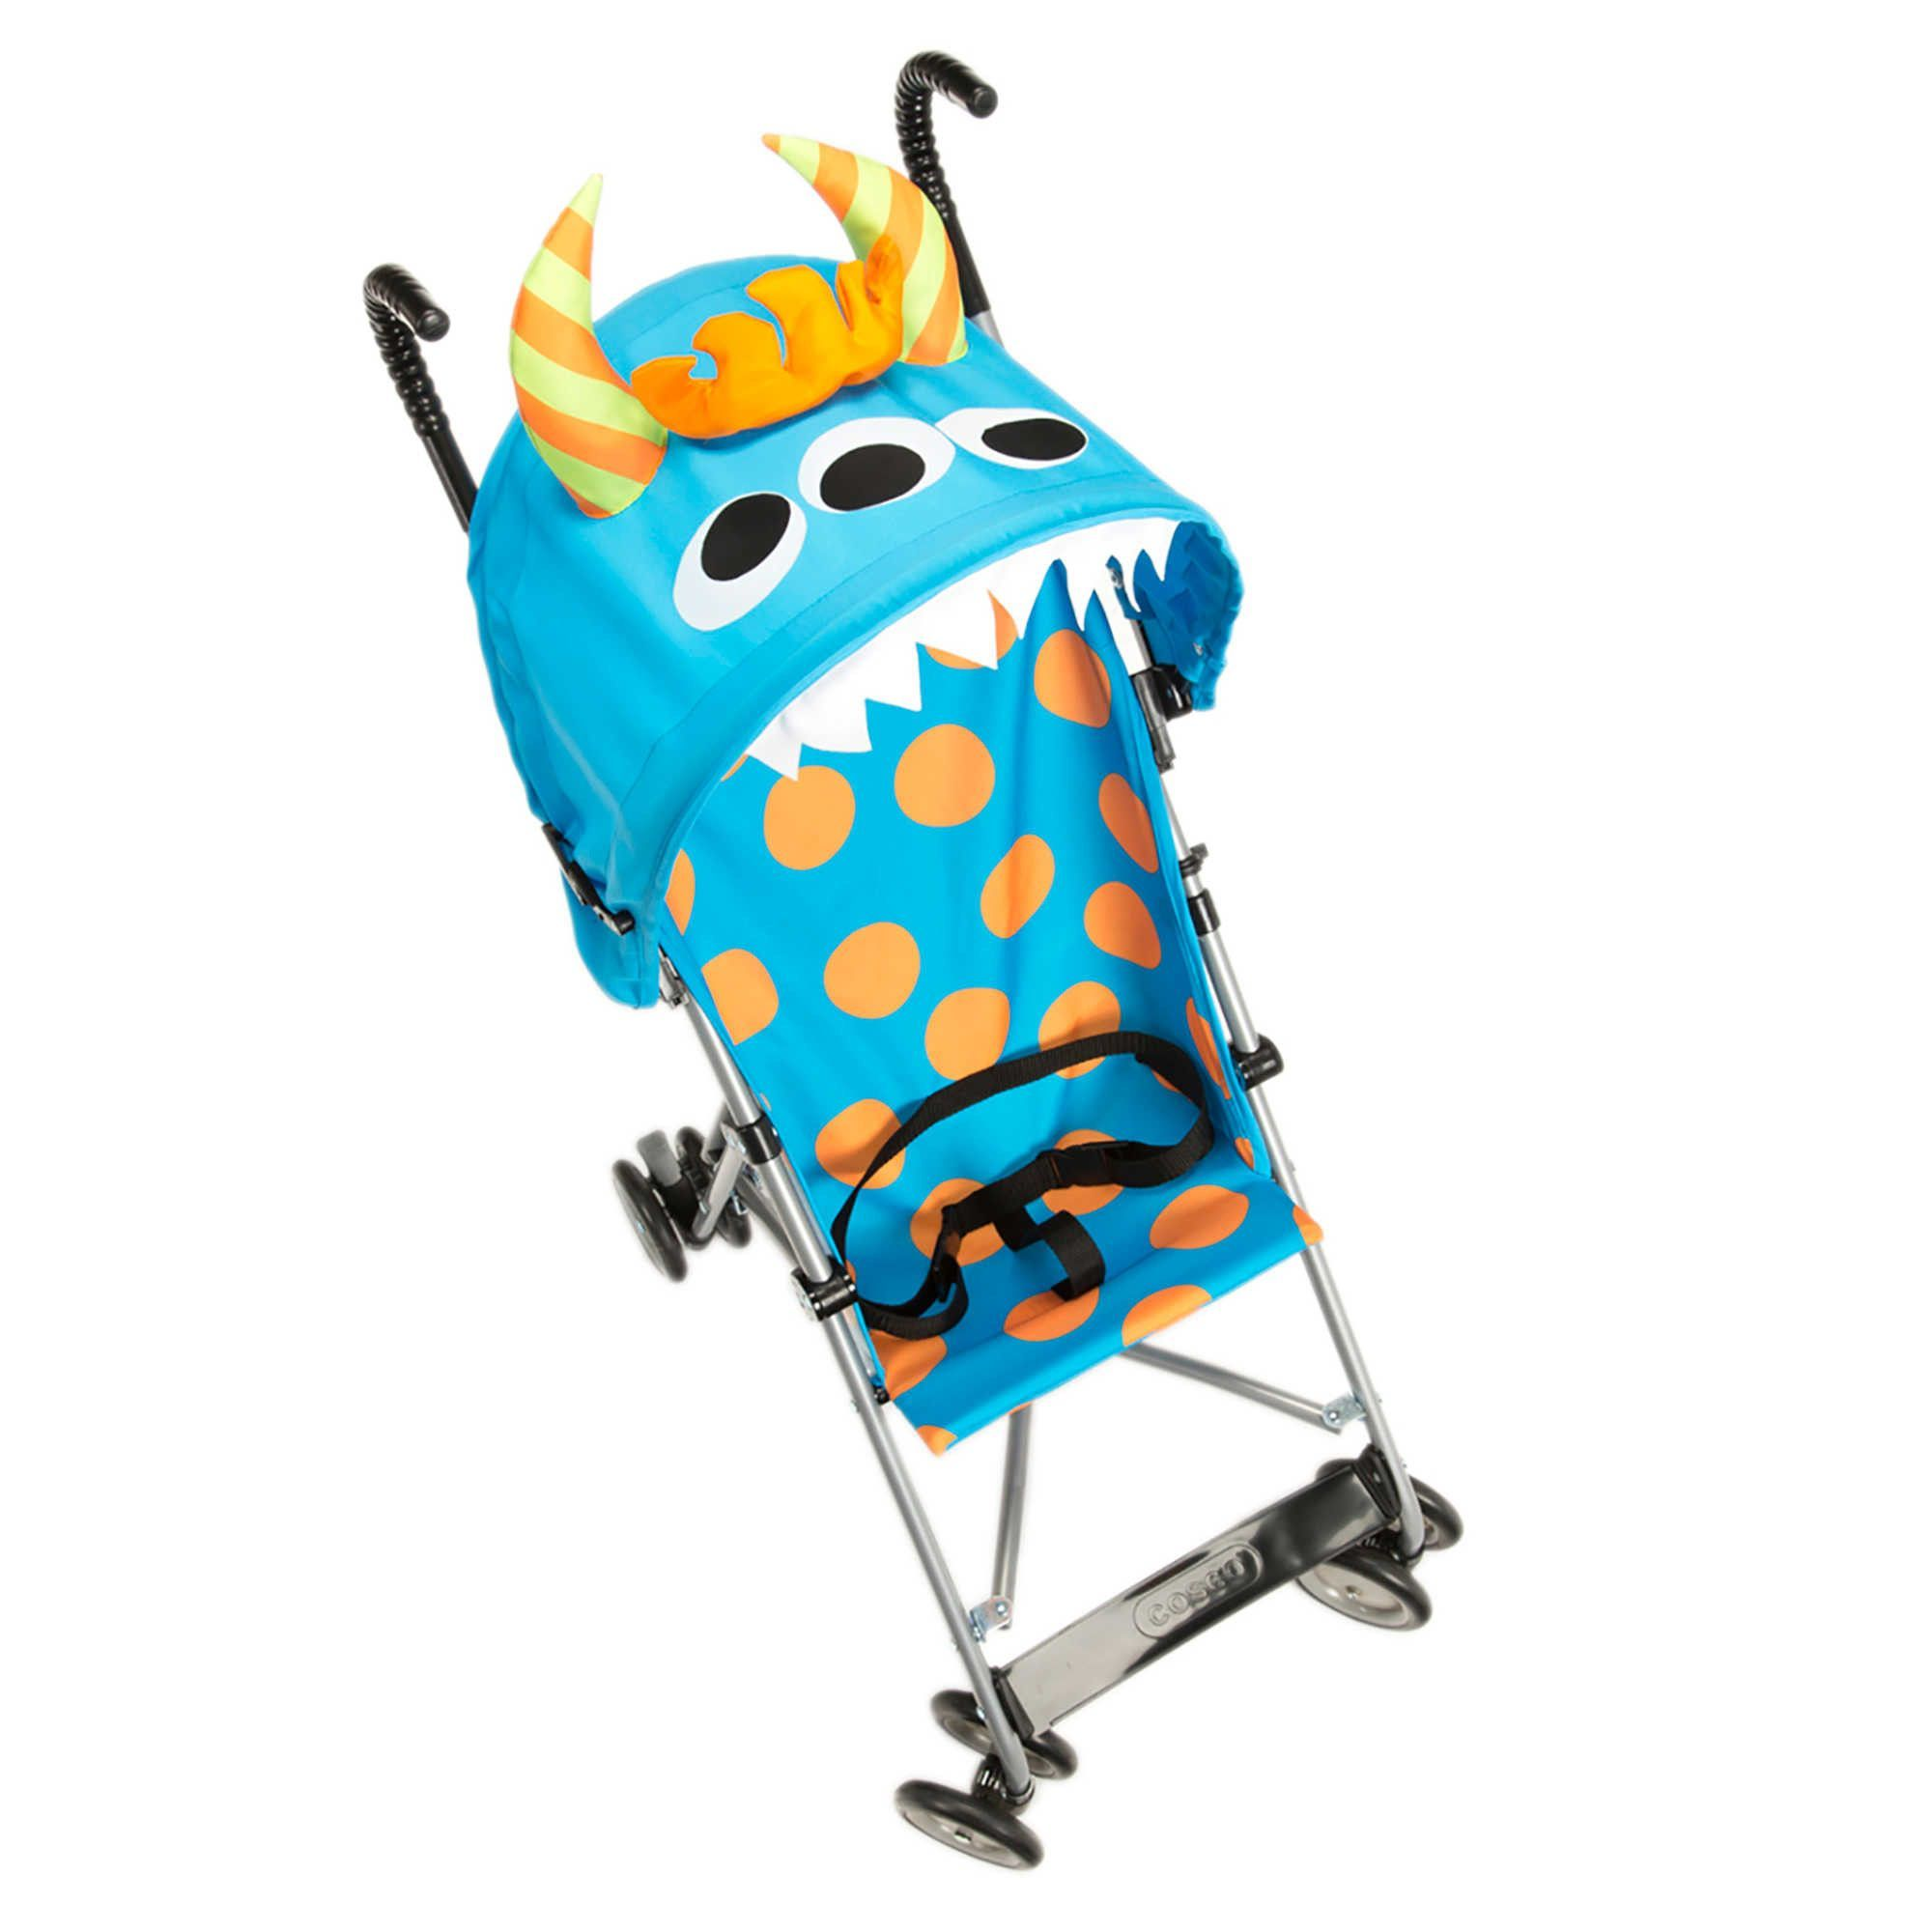 The adorable Character Umbrella Stroller from Cosco is not